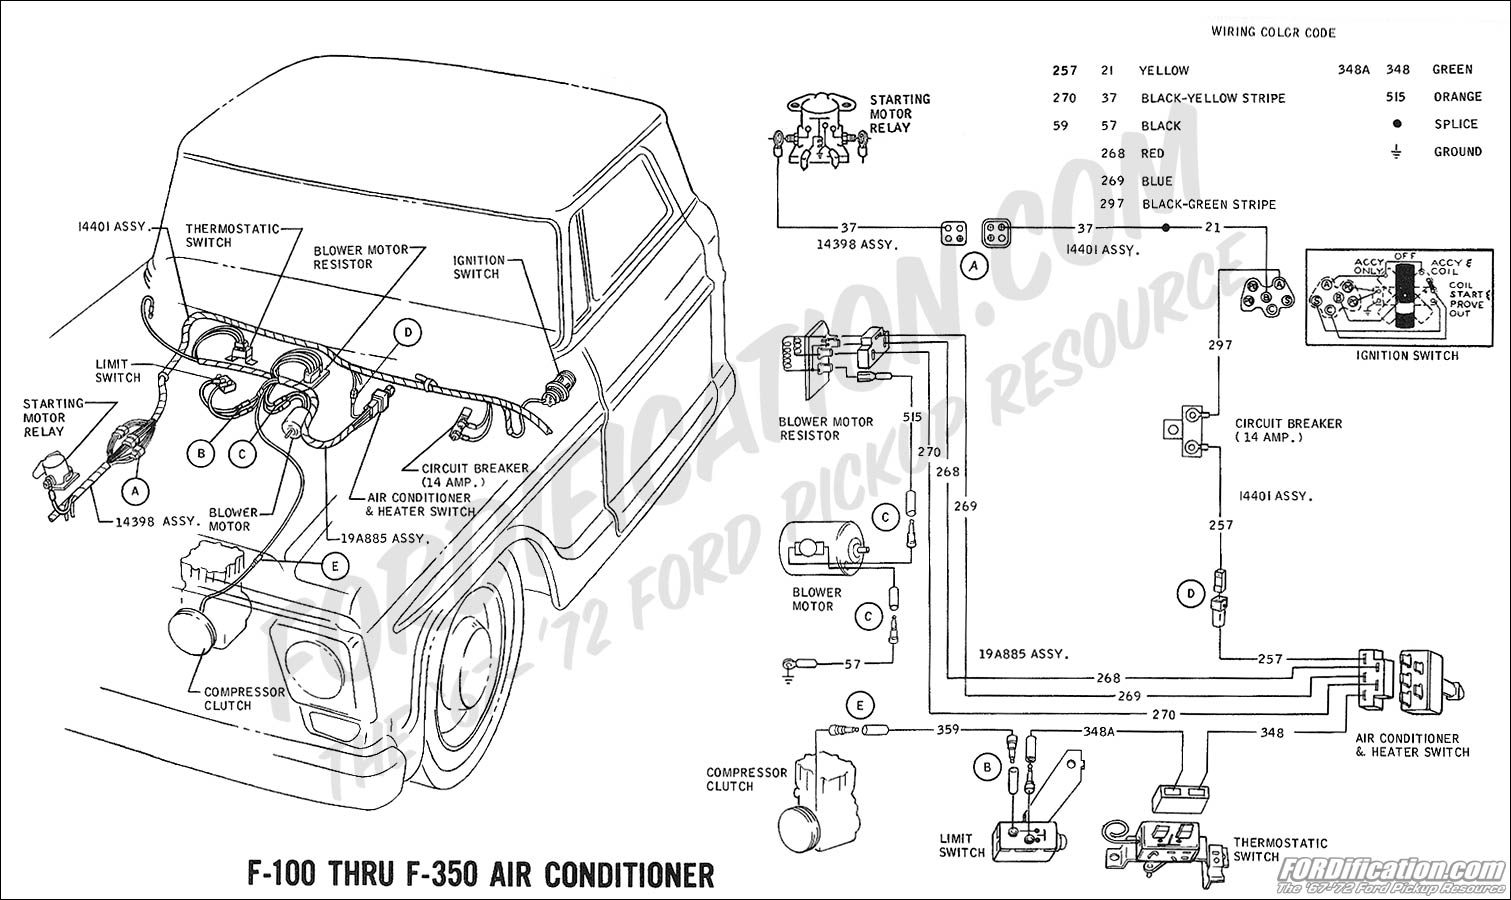 1996 Ford Explorer Radio Wiring Diagram With Fused Ignition 1996 Ford